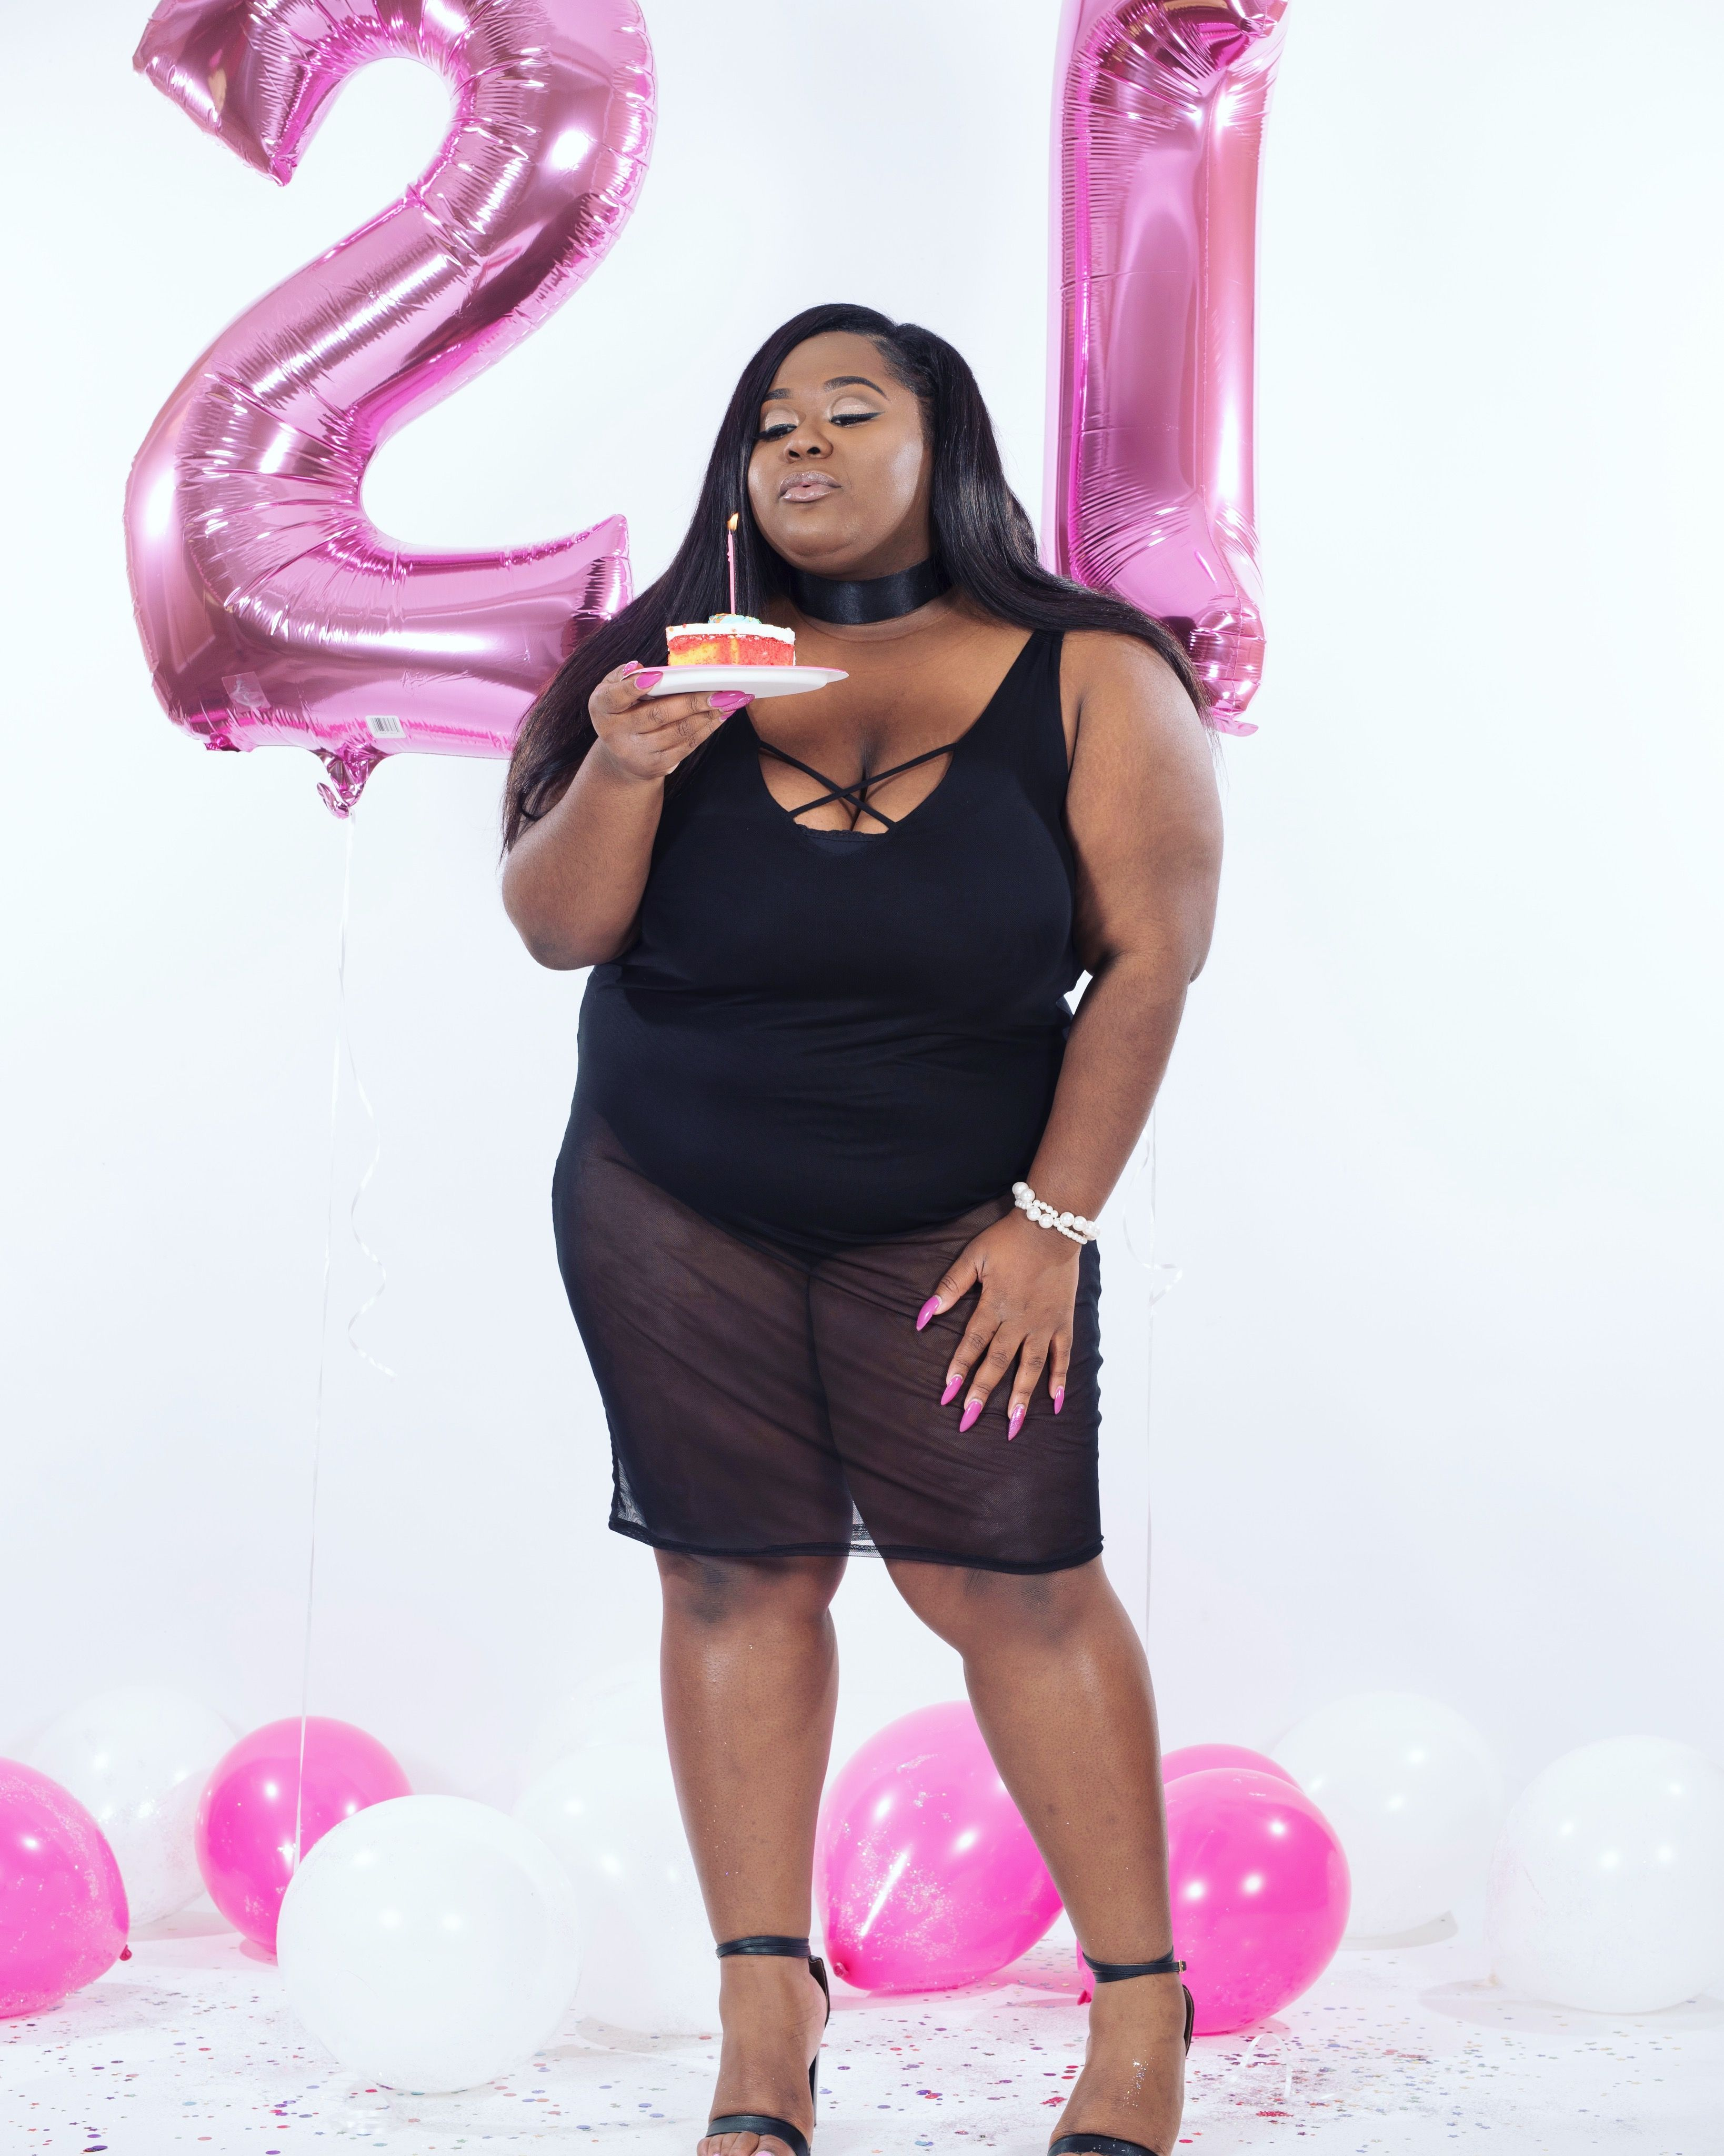 21st Birthday Photoshoot Pinterest Asiapersuasion 21st Birthday Photoshoot Birthday Swimsuit Birthday Photoshoot We found the best 21st birthday gift ideas and dropped them all off into one place for you to shop. 21st birthday photoshoot pinterest